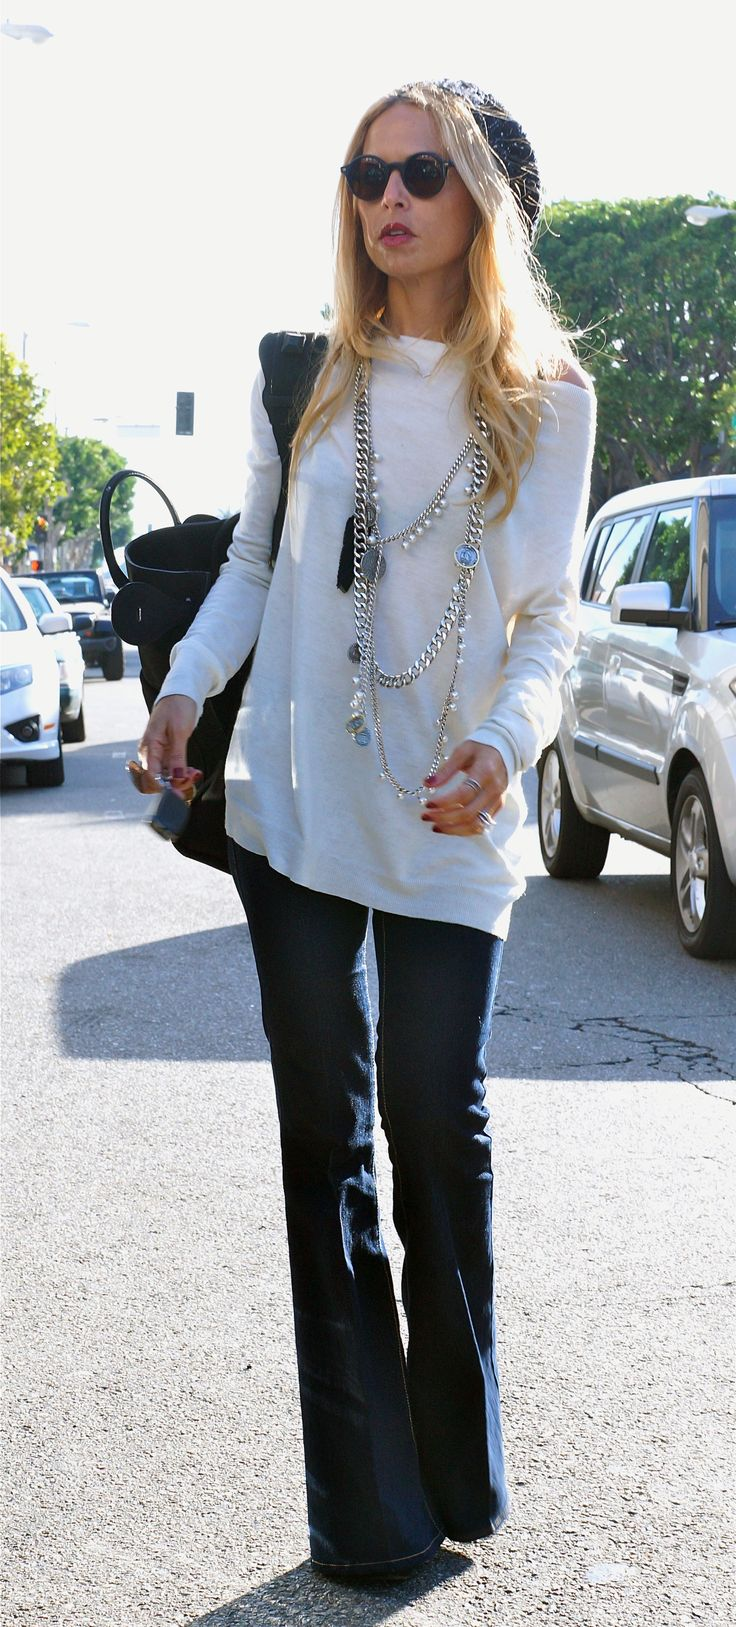 Rachel Zoe in bell-bottom jeans by StalkER :: fashion looks. She does it again. See no shoes peaking out, she's literally my fashion idol!!